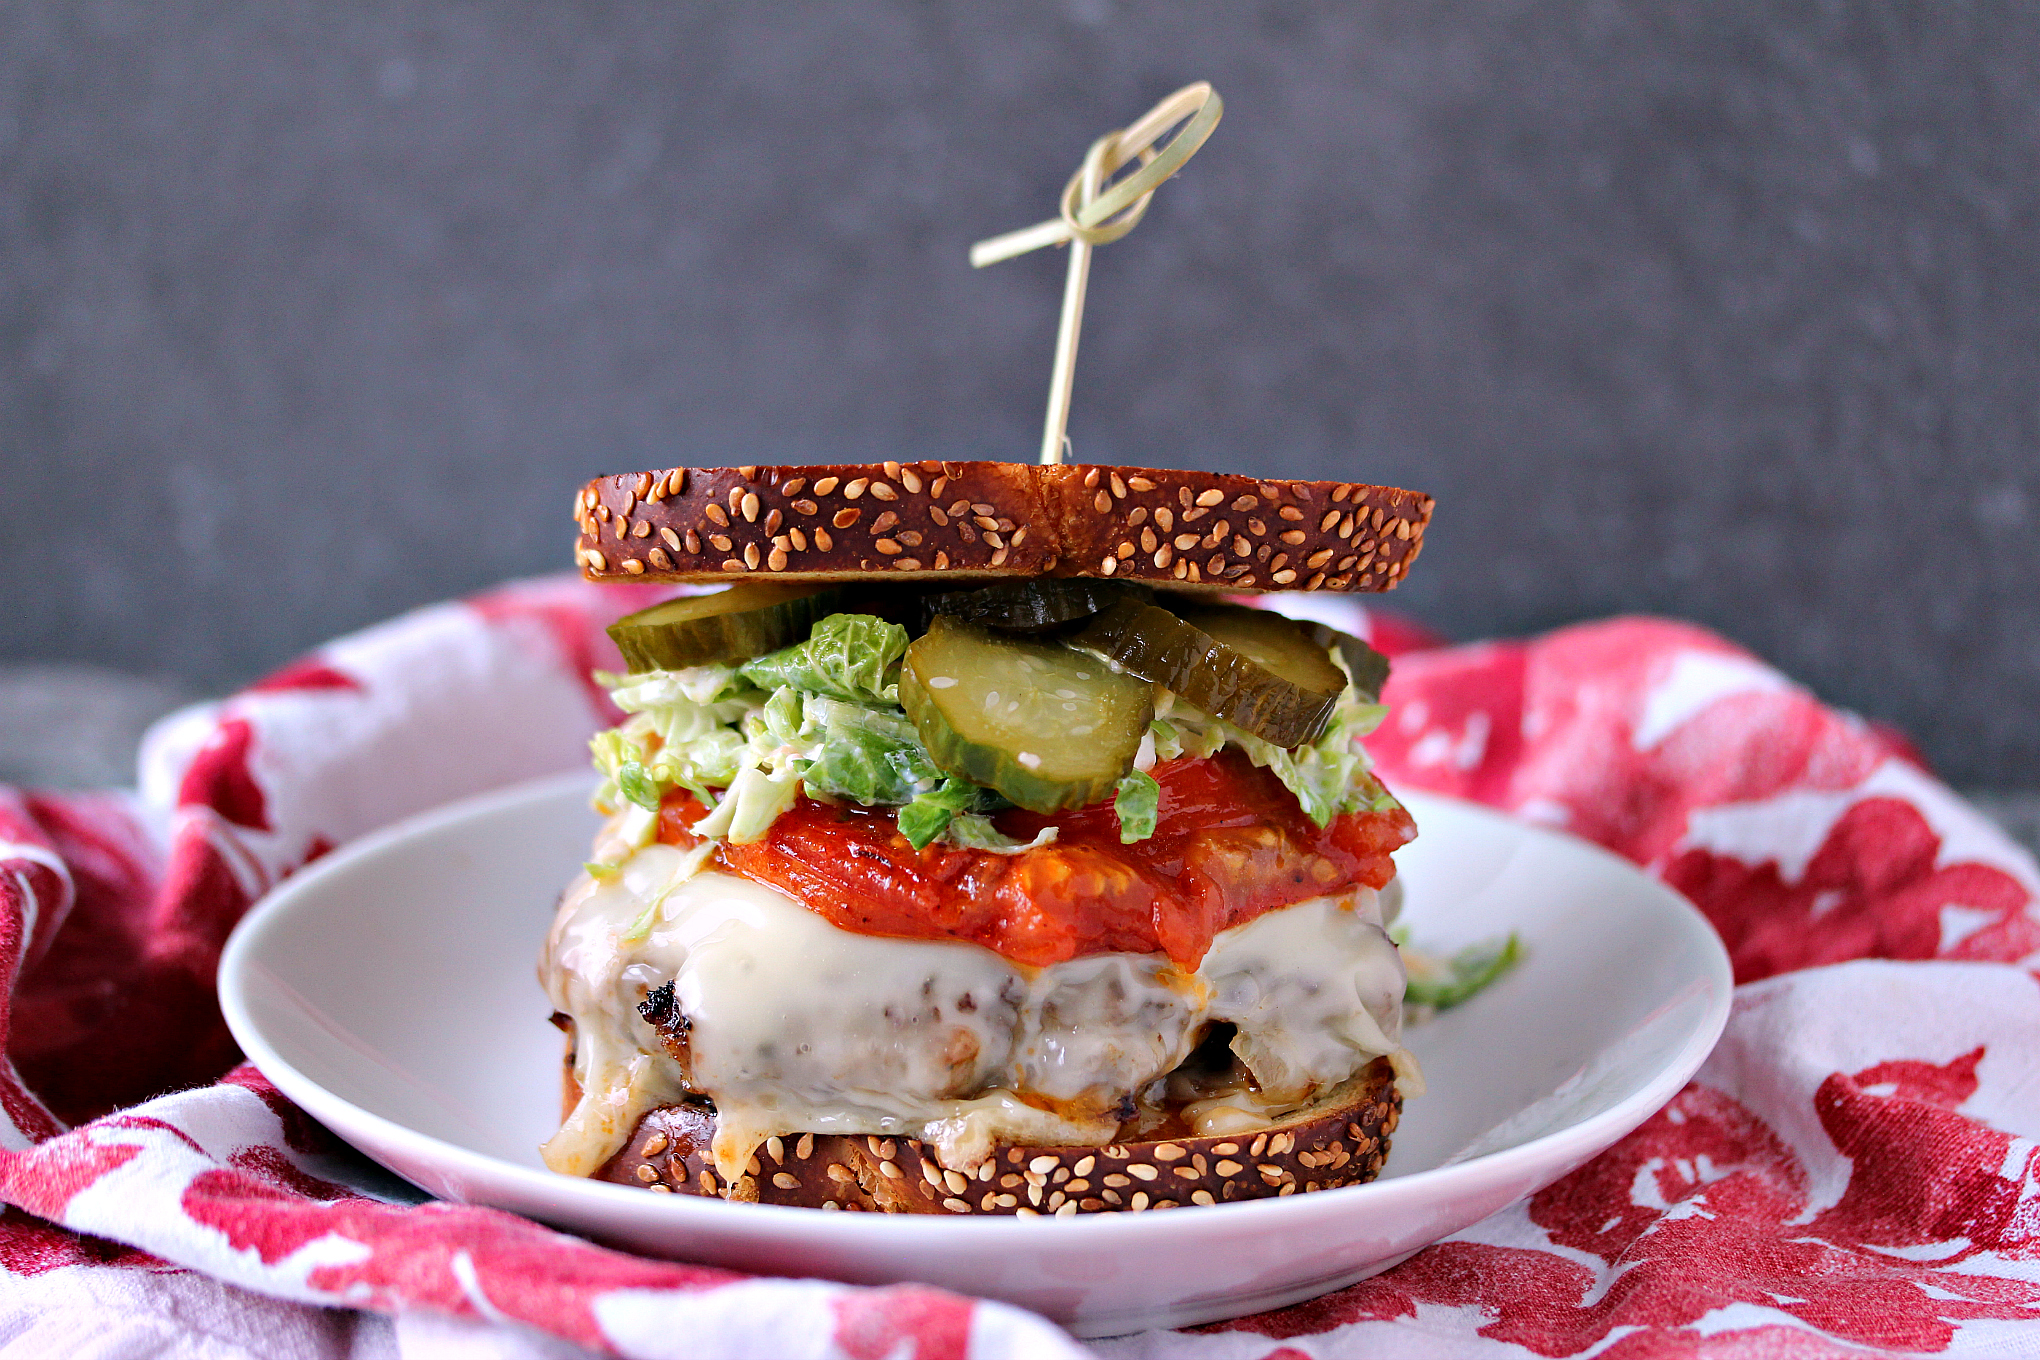 Sausage Smashed Burger Recipe that is packed with flavour and topped with Jarlsberg cheese, homemade pickles, and homemade sprout slaw.